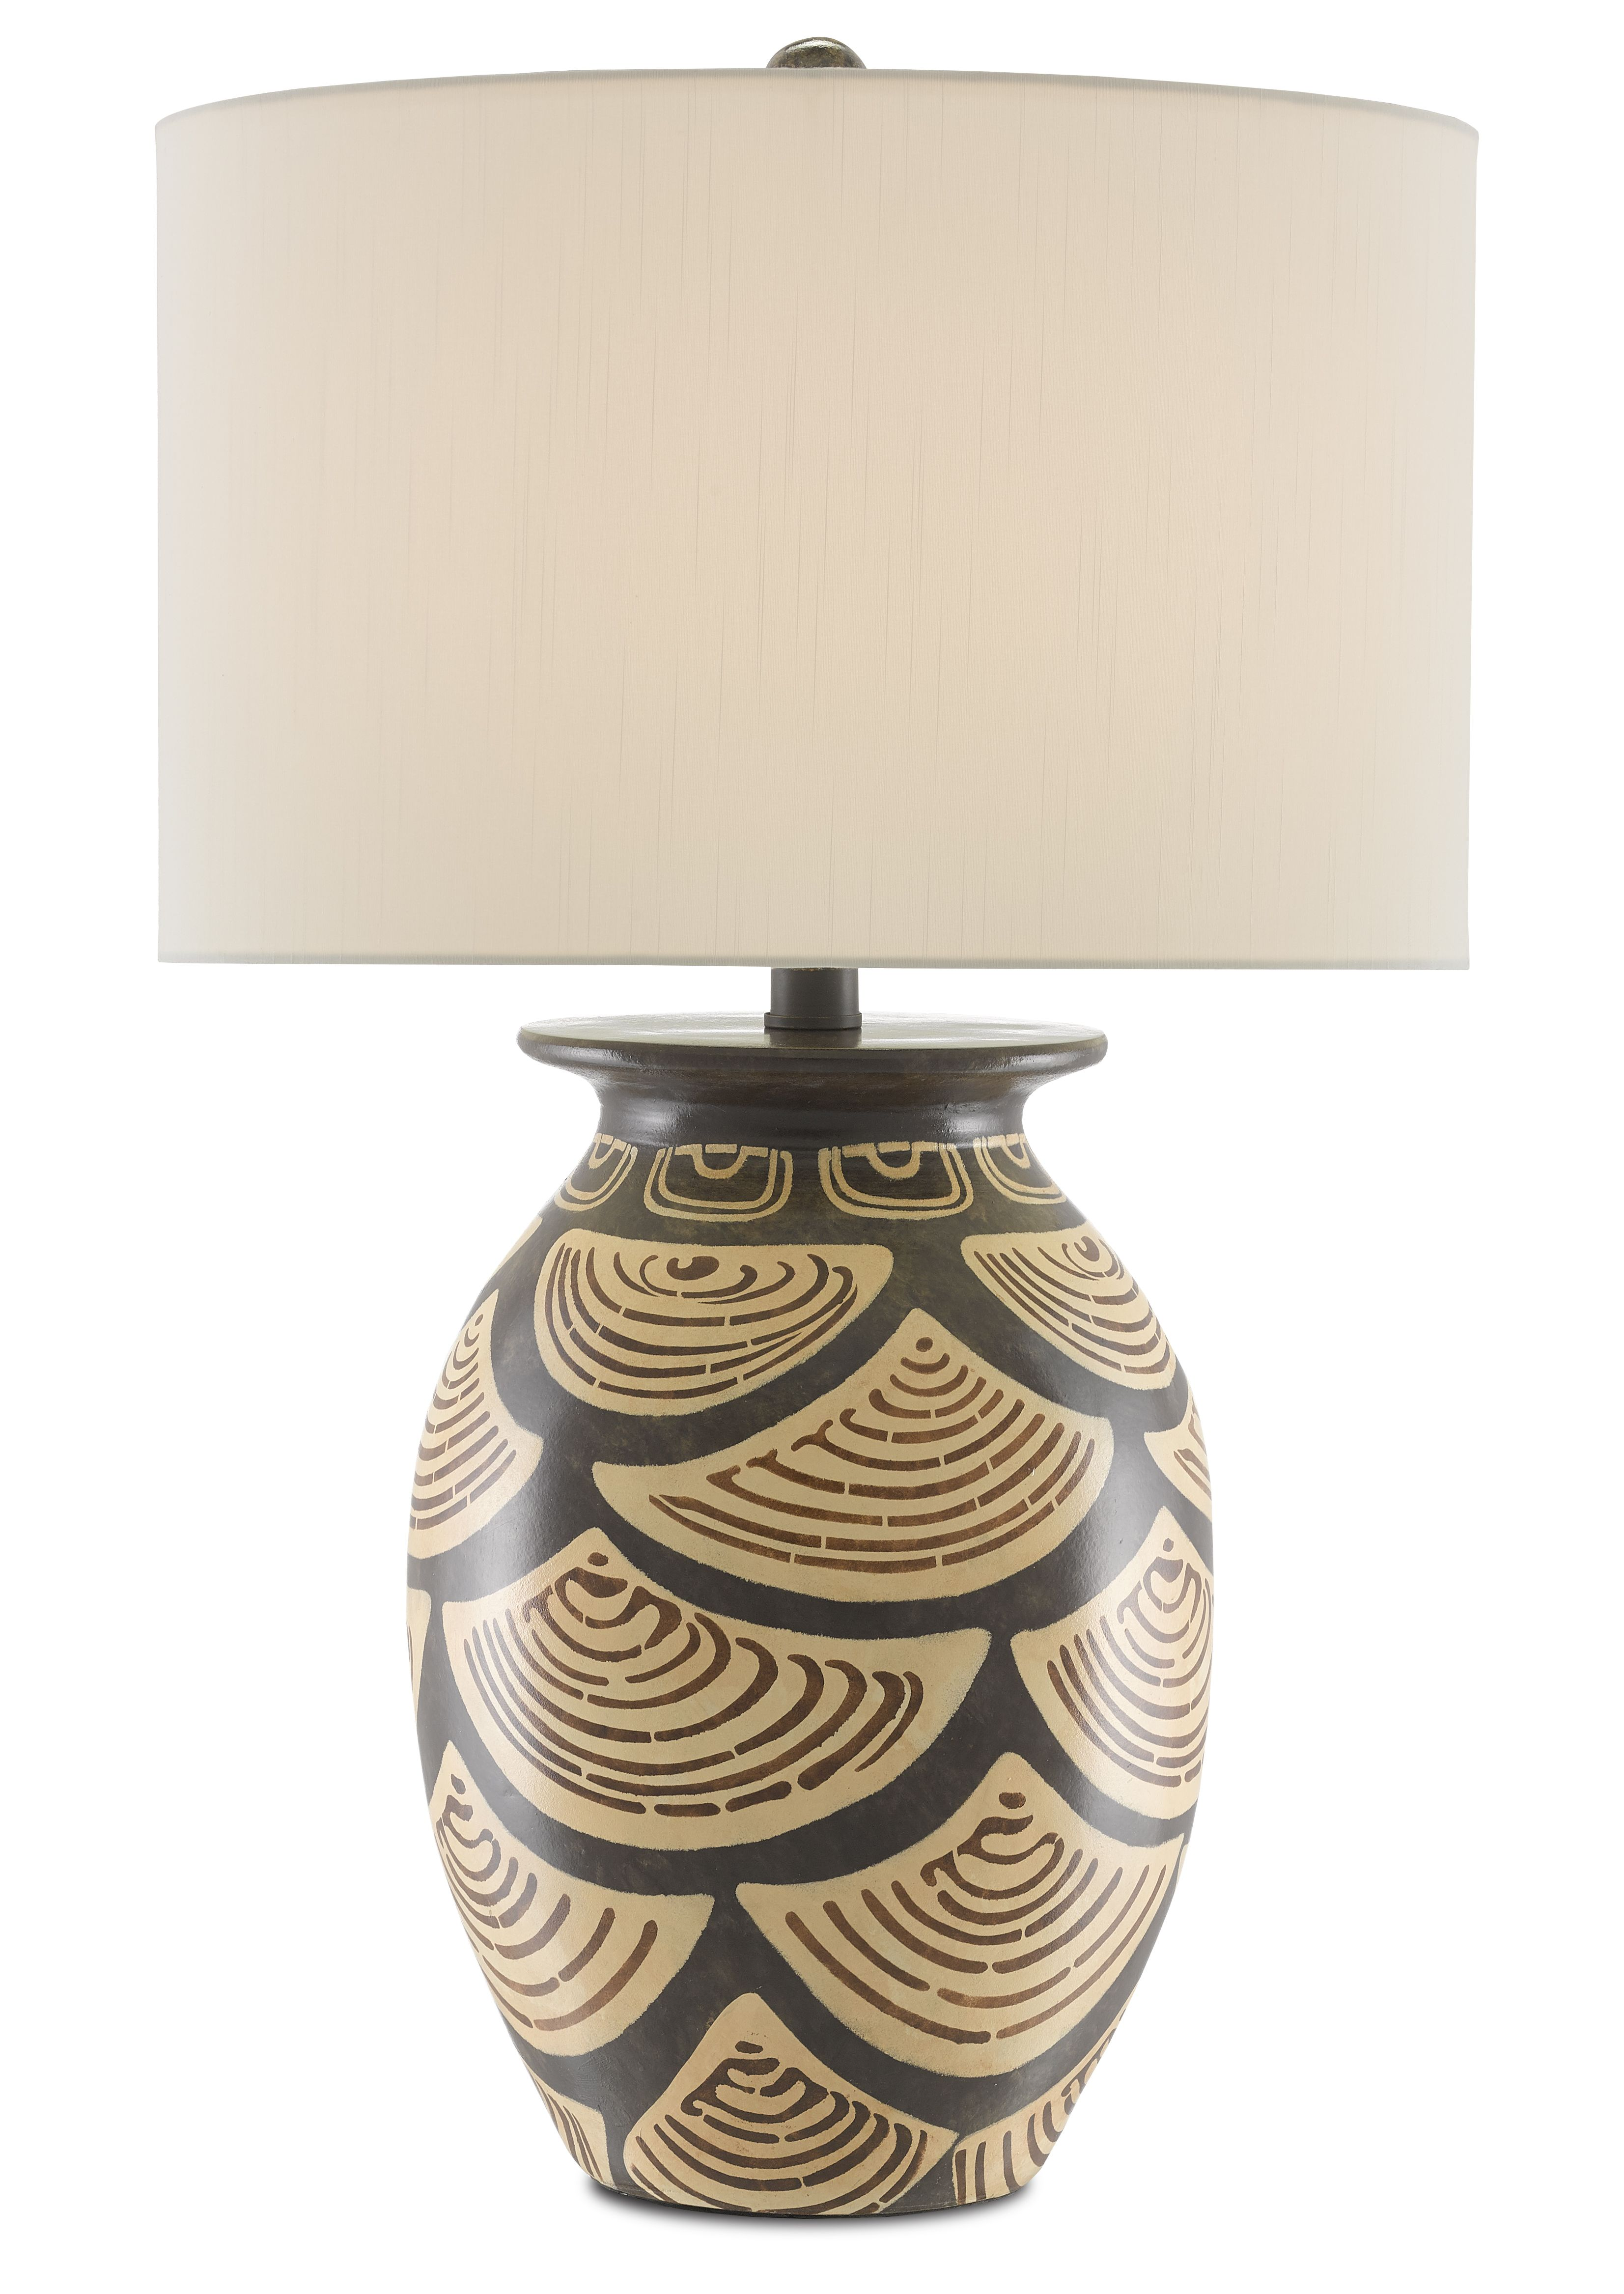 Nahau Table Lamp Currey And Company In 2020 Lamp Brown Lamps Table Lamp